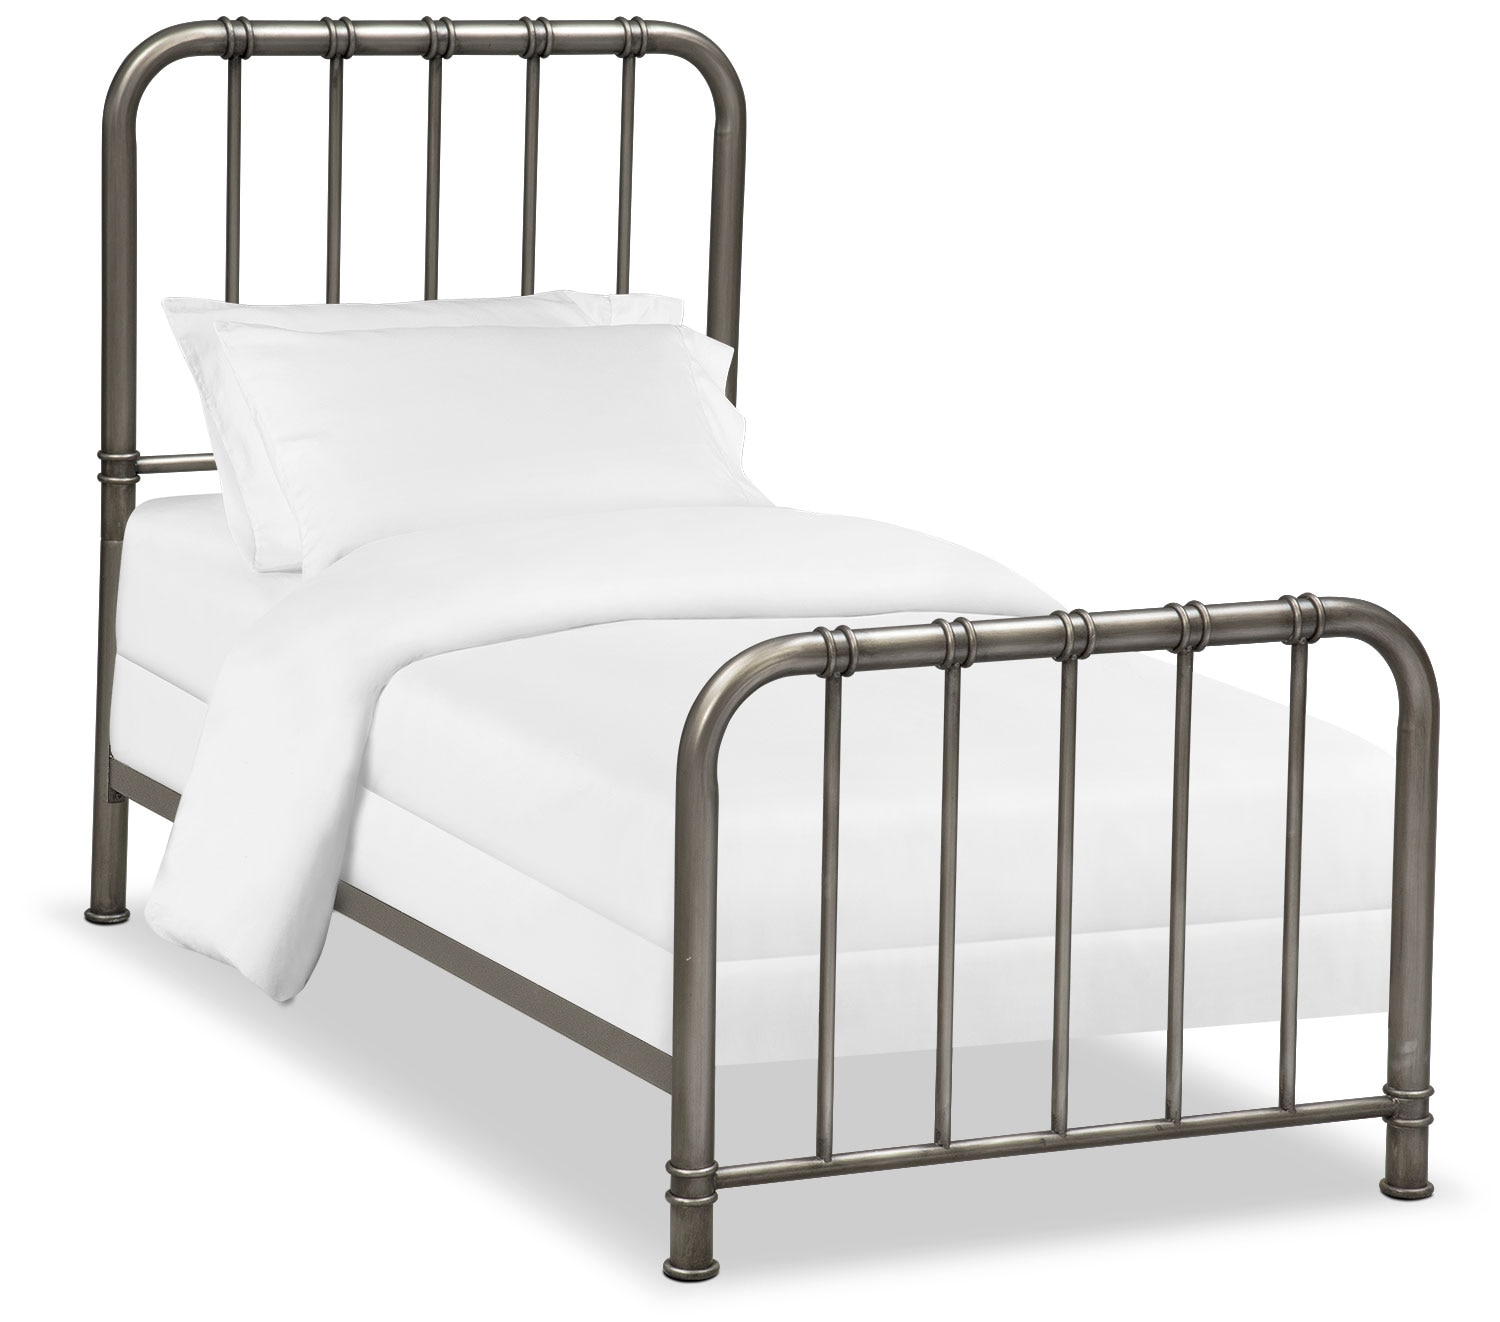 Bedroom Furniture - Pendleton Youth Twin Bed - Gunmetal